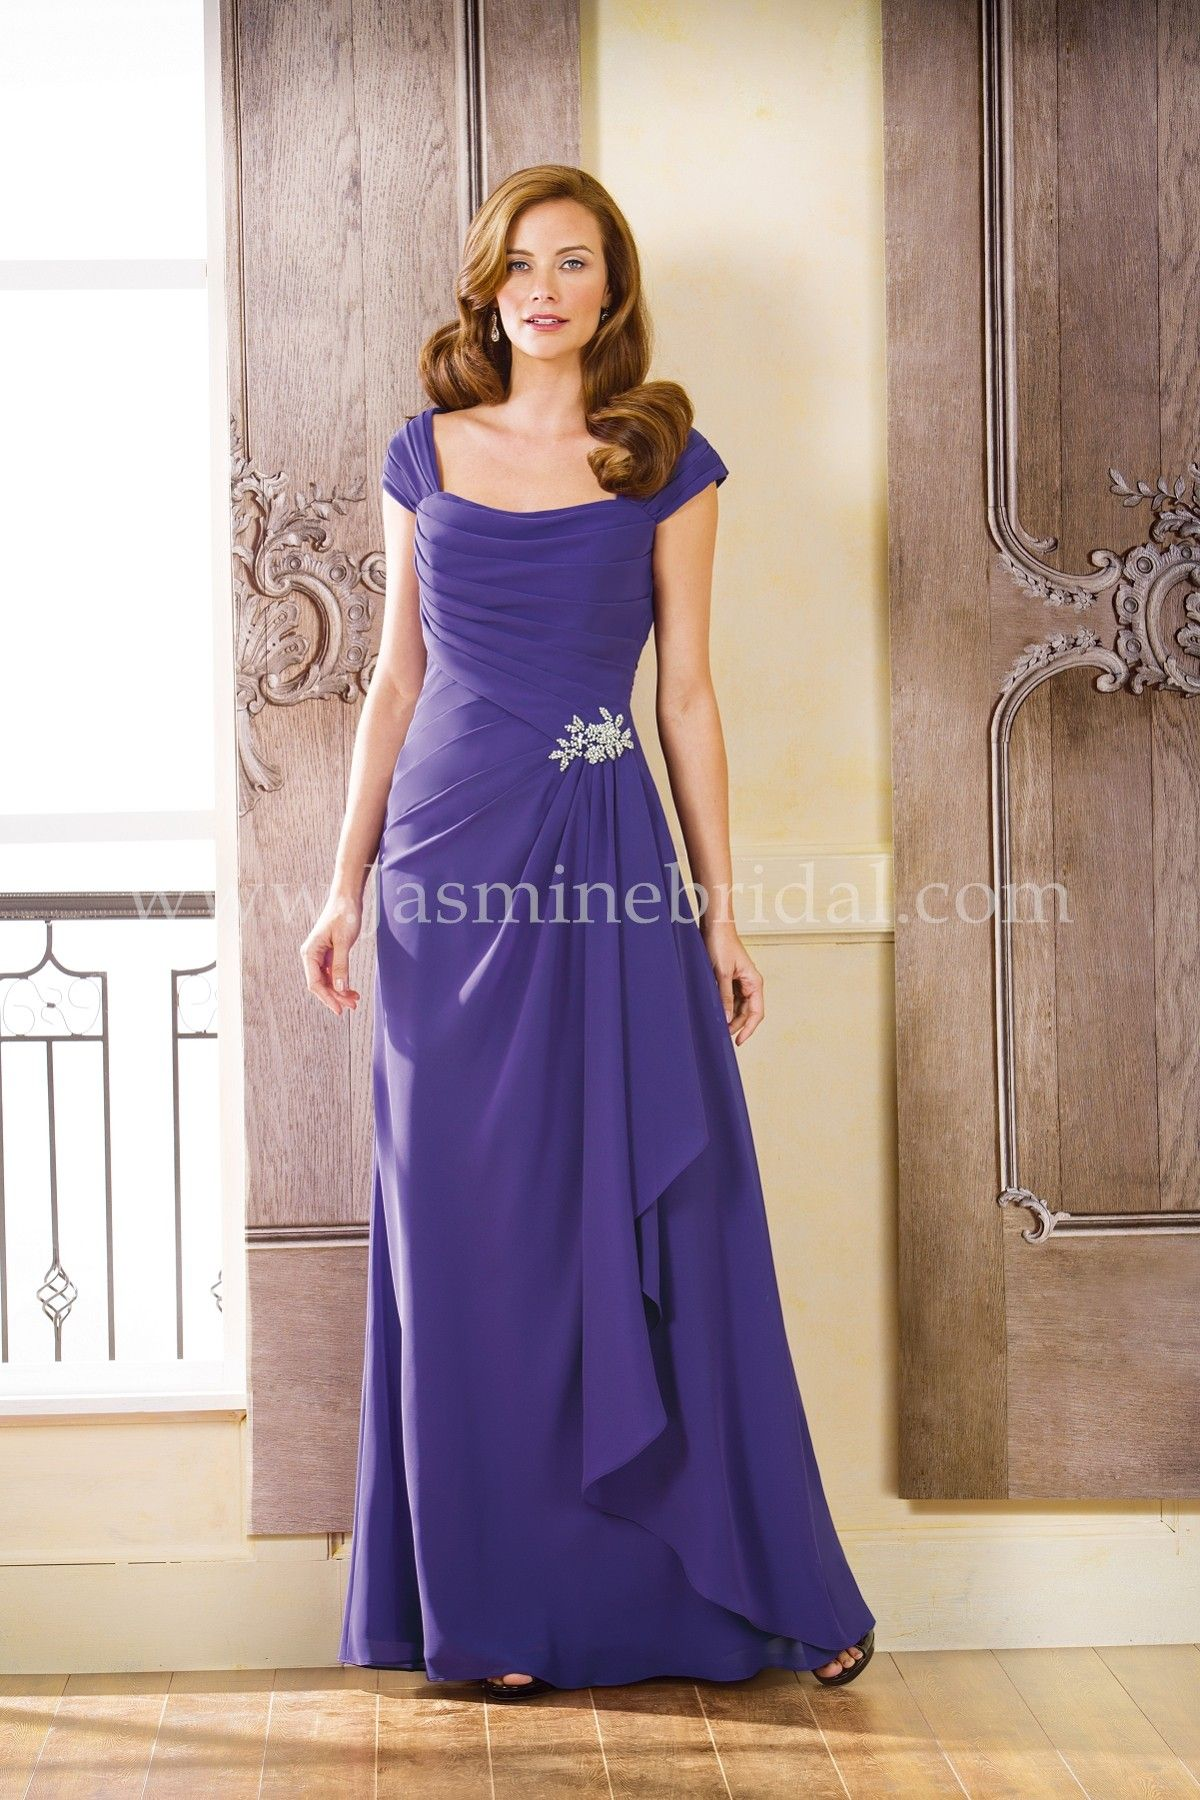 Jasmine Bridal Jade Style J175068 in Concord Grape // Chic and ...